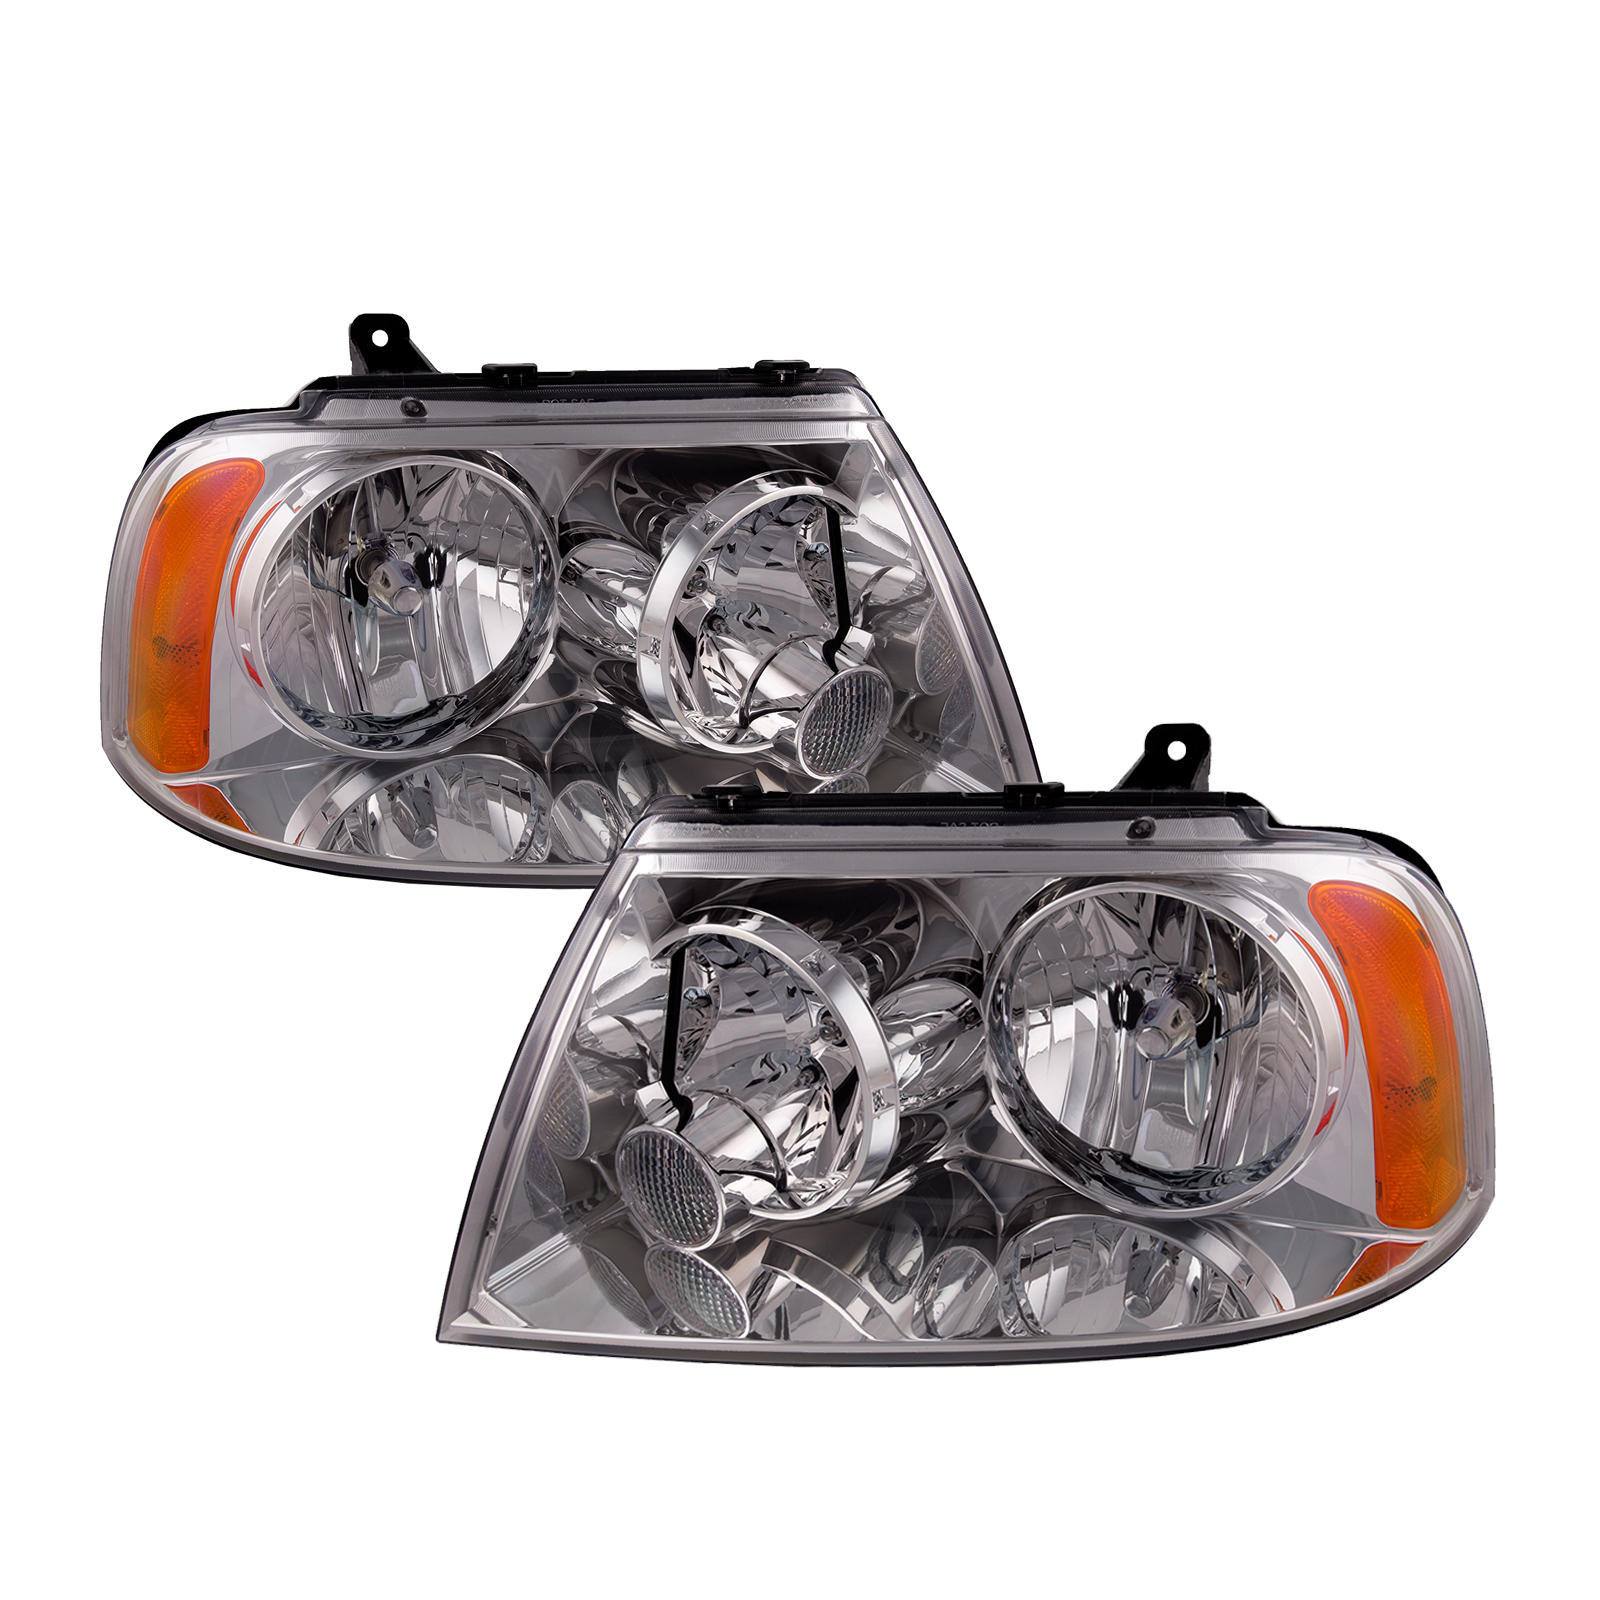 Gulf Stream Crescendo 2004-2006 RV Motorhome Pair Left /& Right Replacement Front Headlights with Bulbs